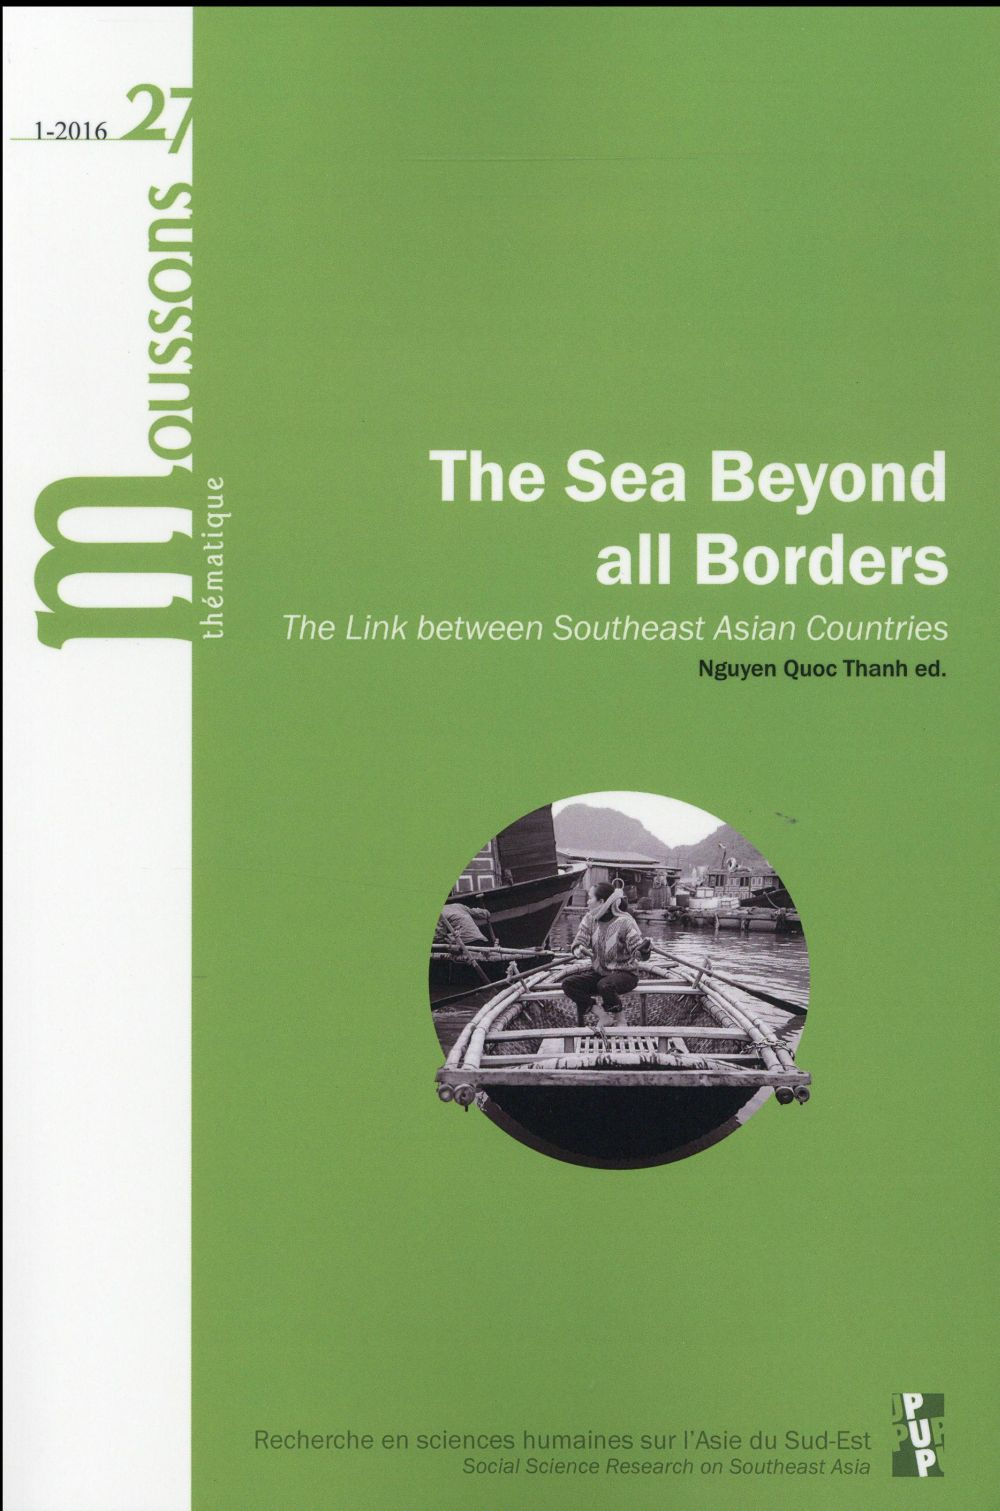 THE SEA BEYOND ALL BORDERS - THE LINK BETWEEN SOUTHEAST ASIAN COUNTRIES